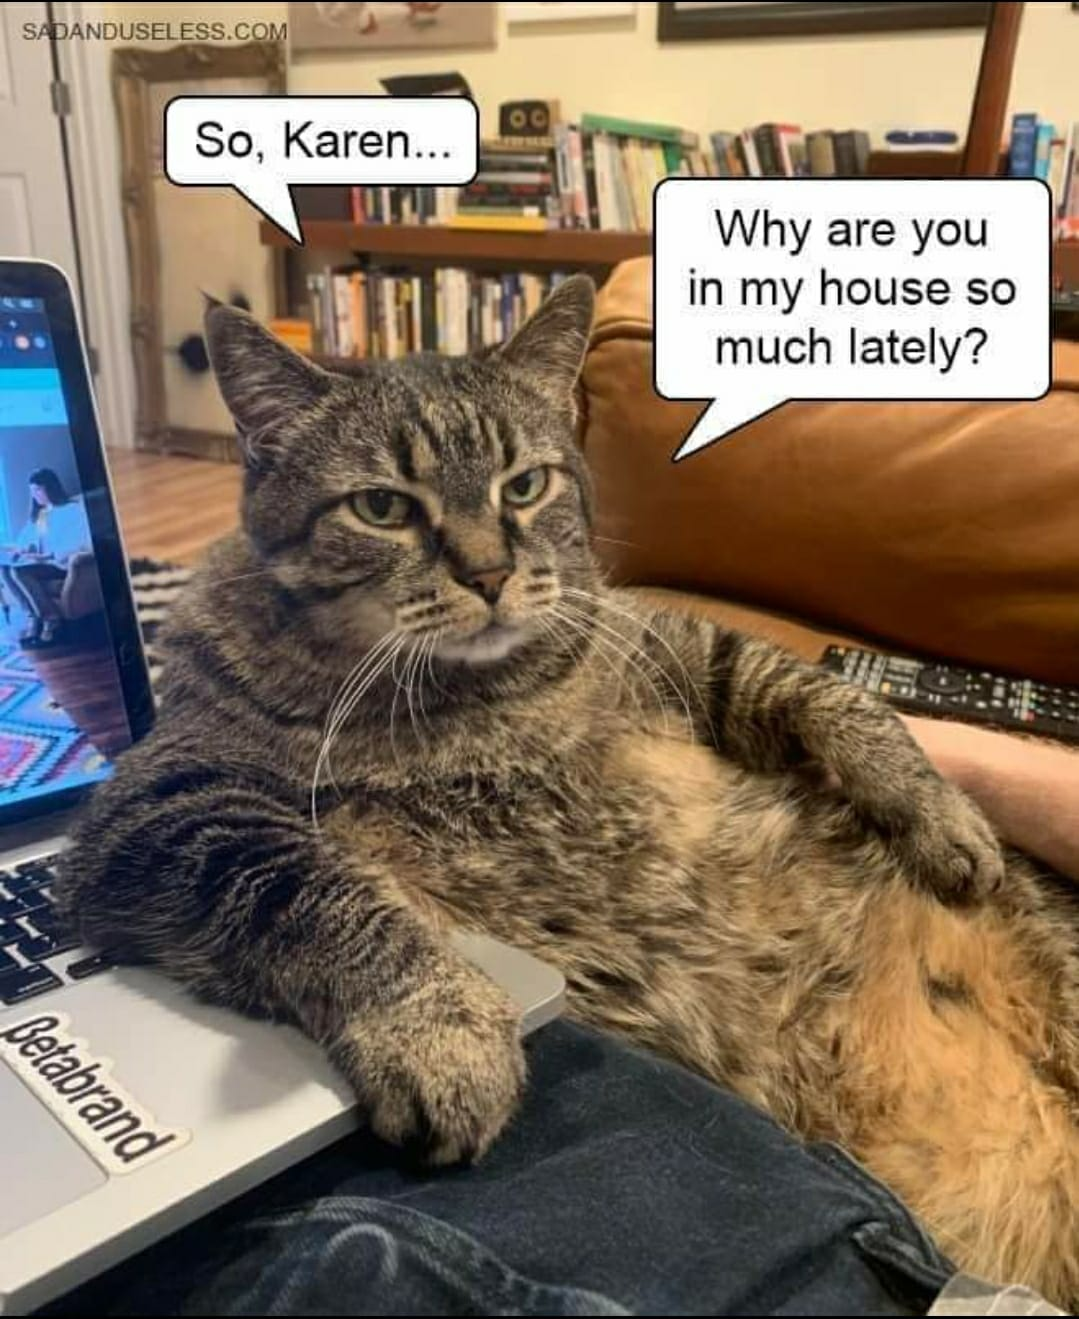 Karen's cat needs to know when this quarantine will end ...